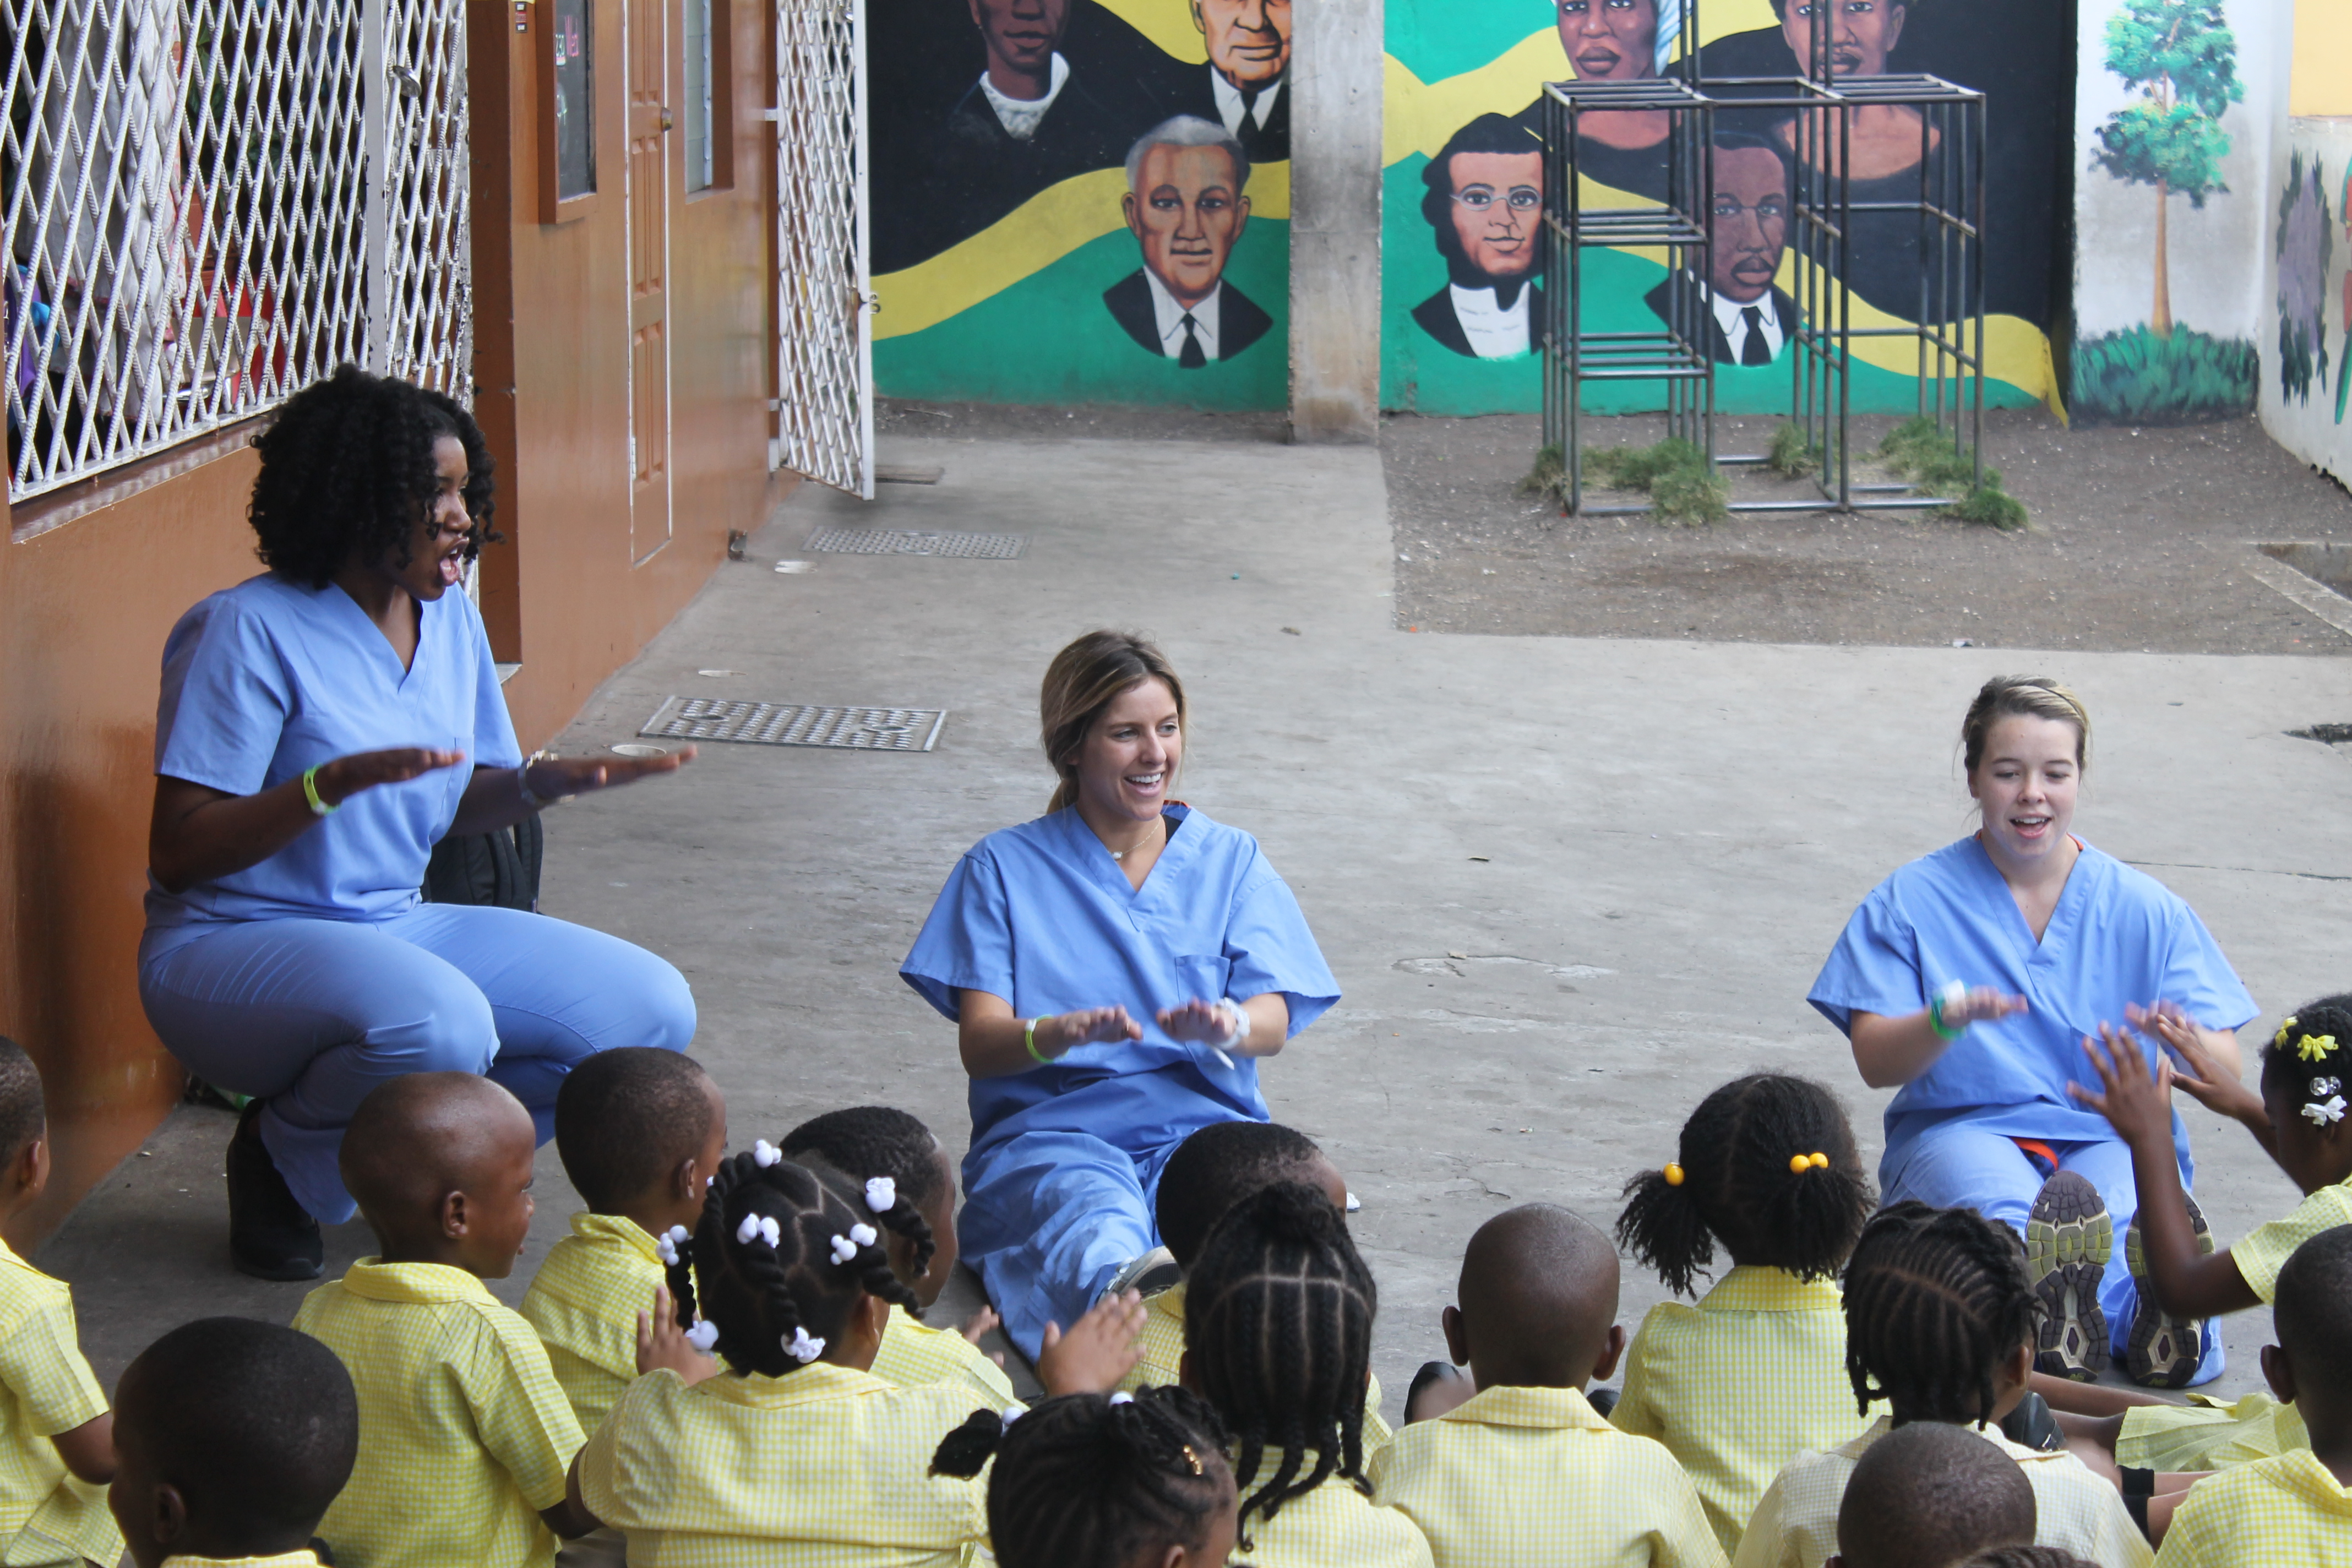 Schools do not have enough nurses to provide emergency care